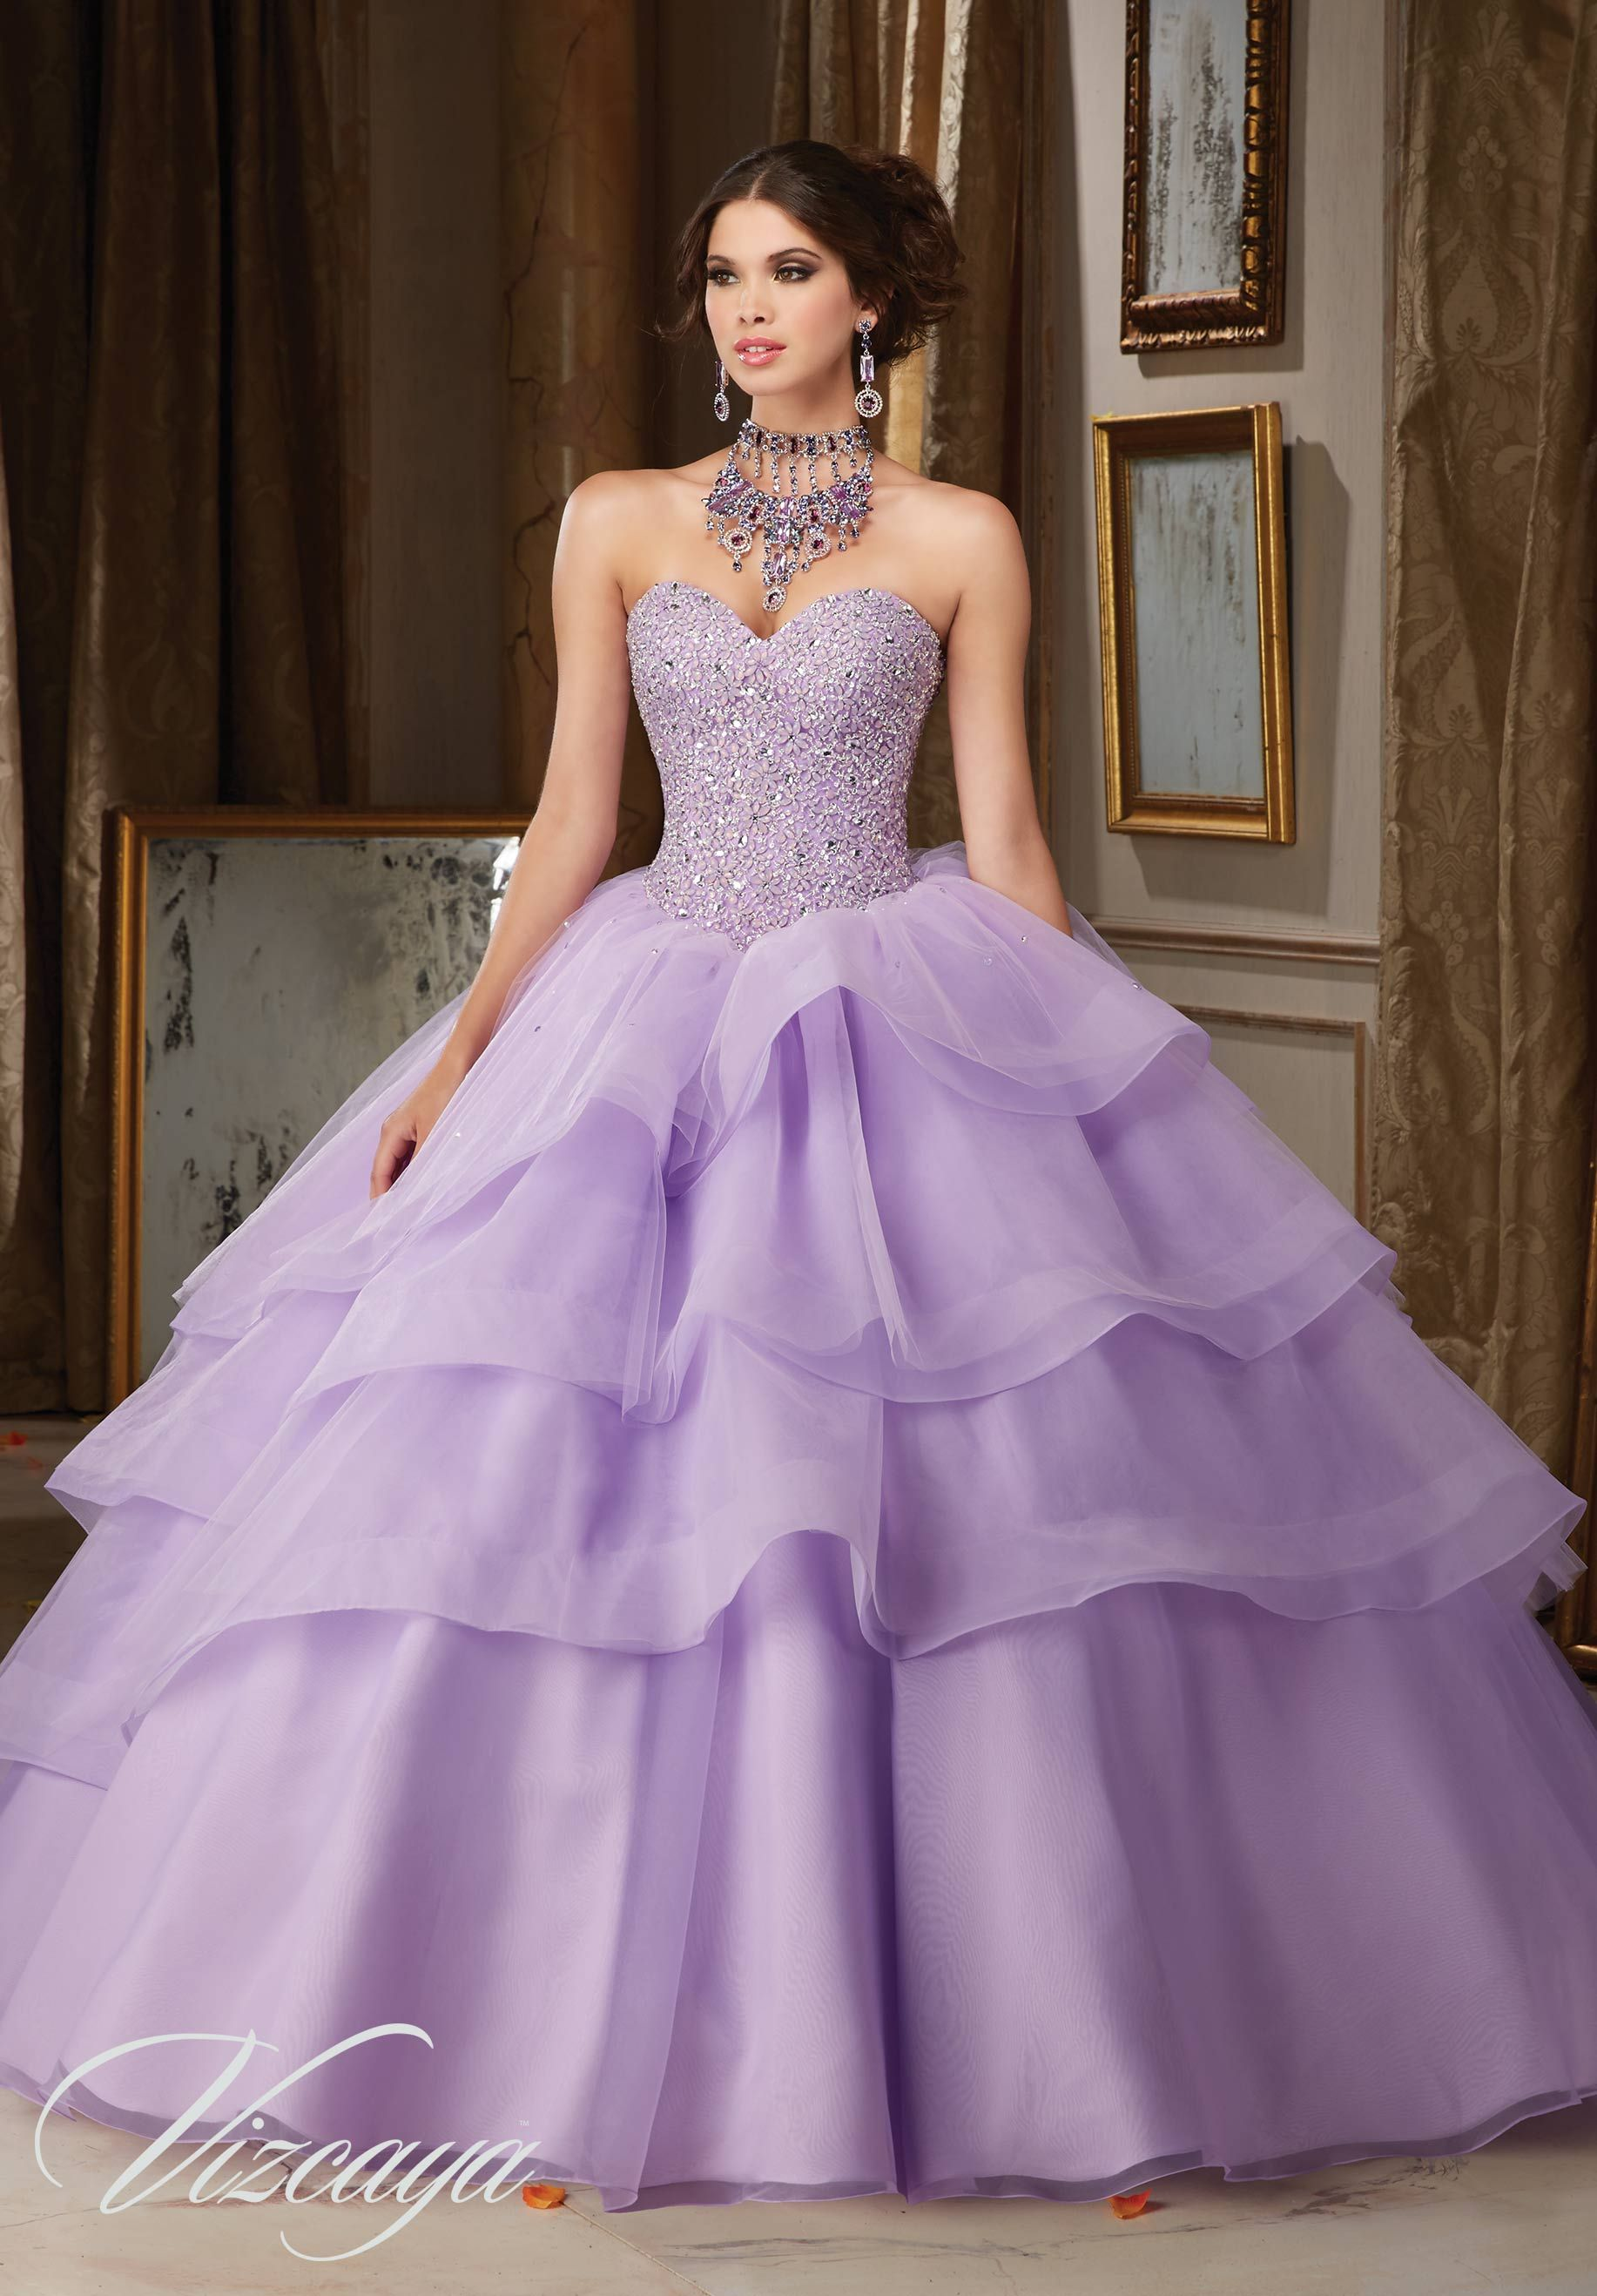 c6aa06a5a1 Quinceanera Dresses by Morilee designed by Madeline Gardner. Tulle and Organza  Quinceañera Dress with Cascading Tiered Skirt.